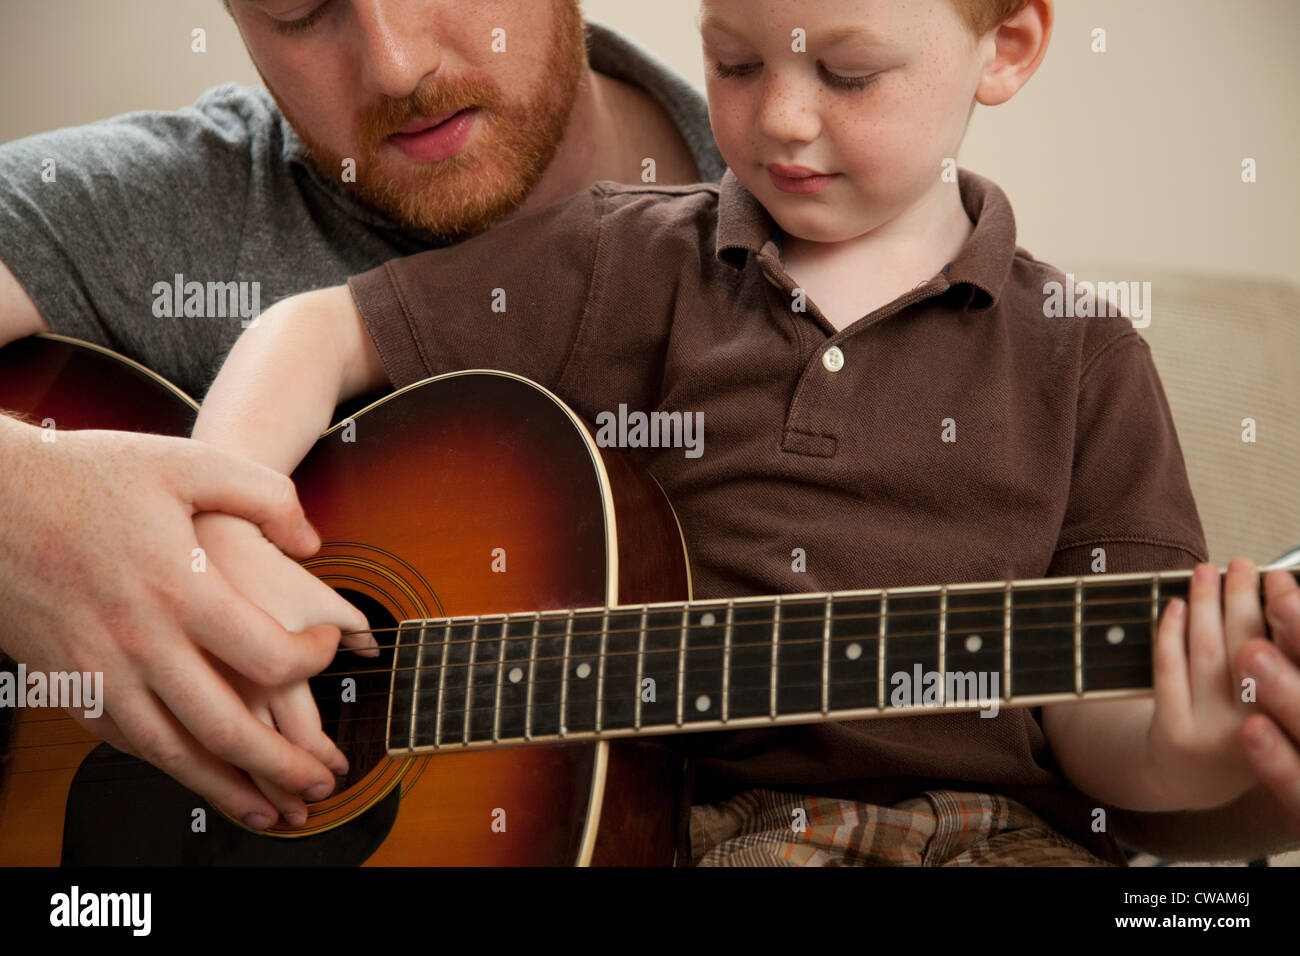 Father teaching son to play guitar - Stock Image